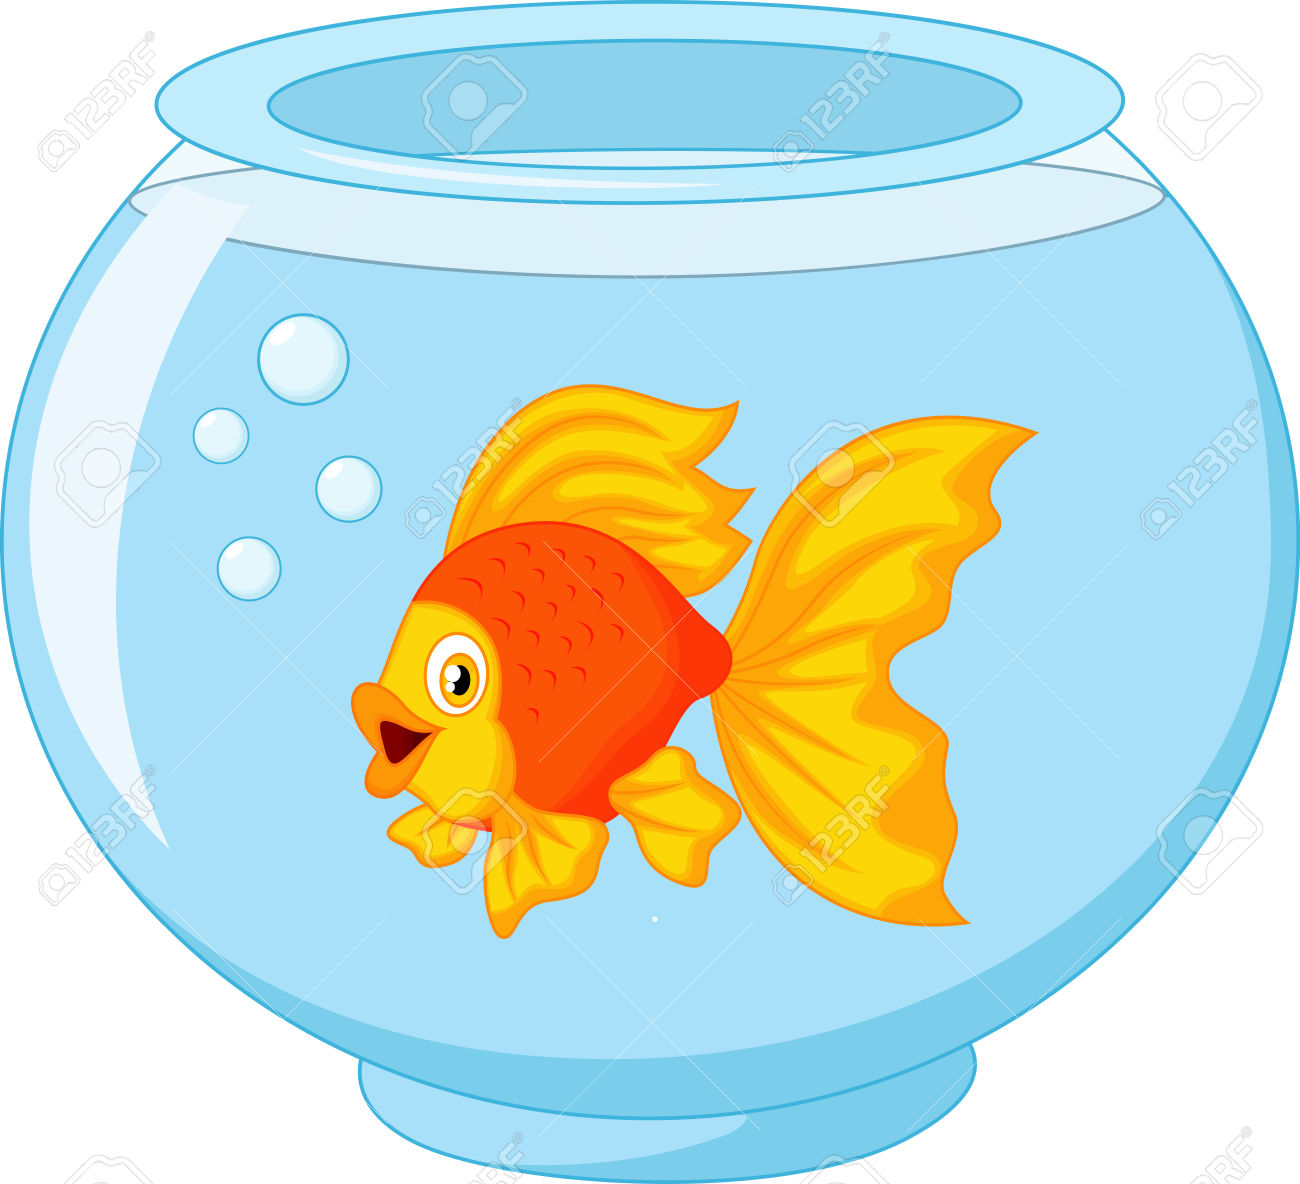 Gold fish bowl clipart hdclipartall no